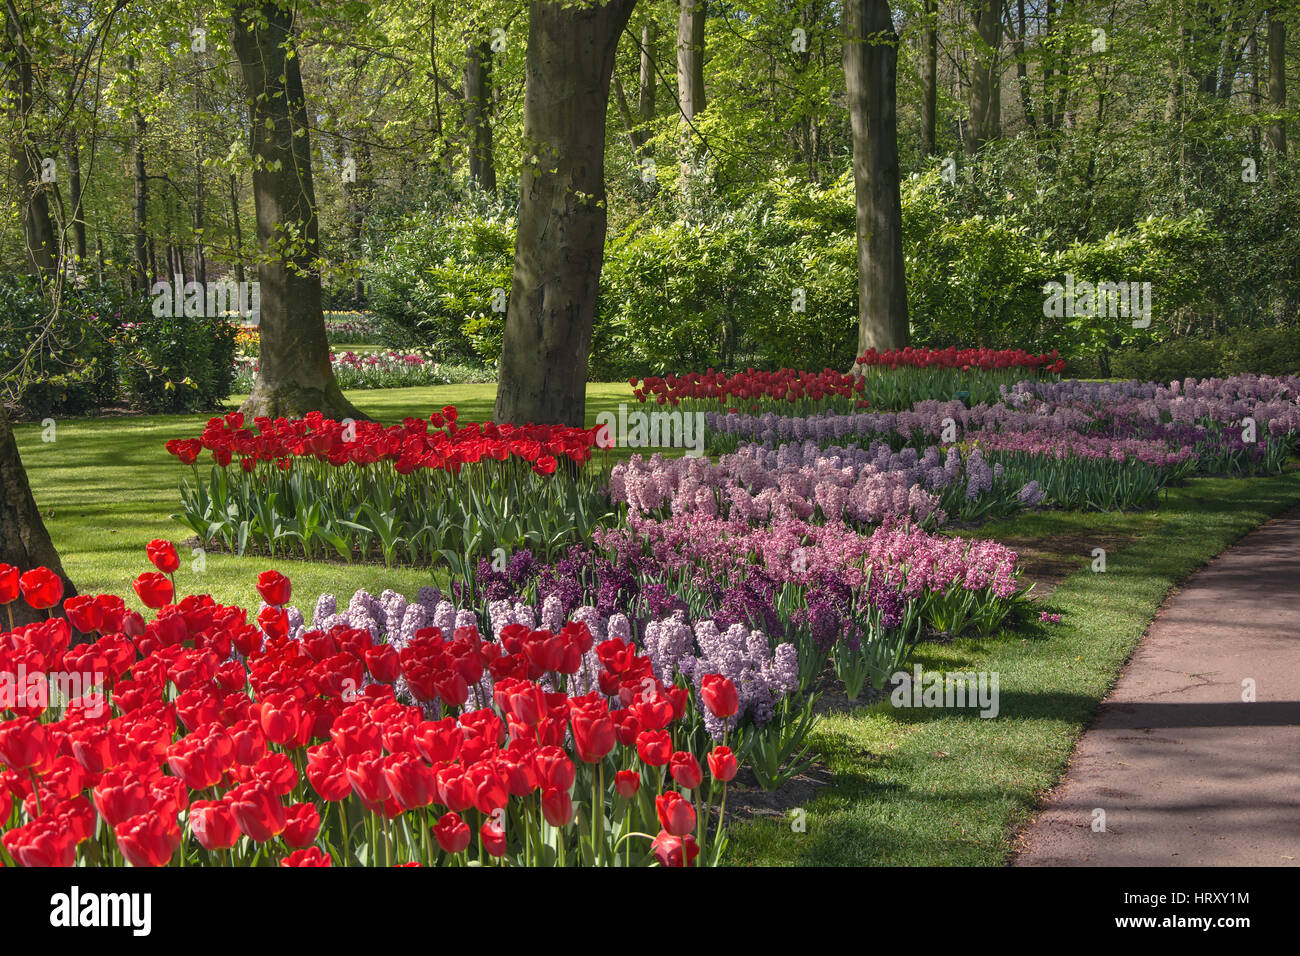 The keukenhof is de most beautiful flower park in the world stock the keukenhof is de most beautiful flower park in the world izmirmasajfo